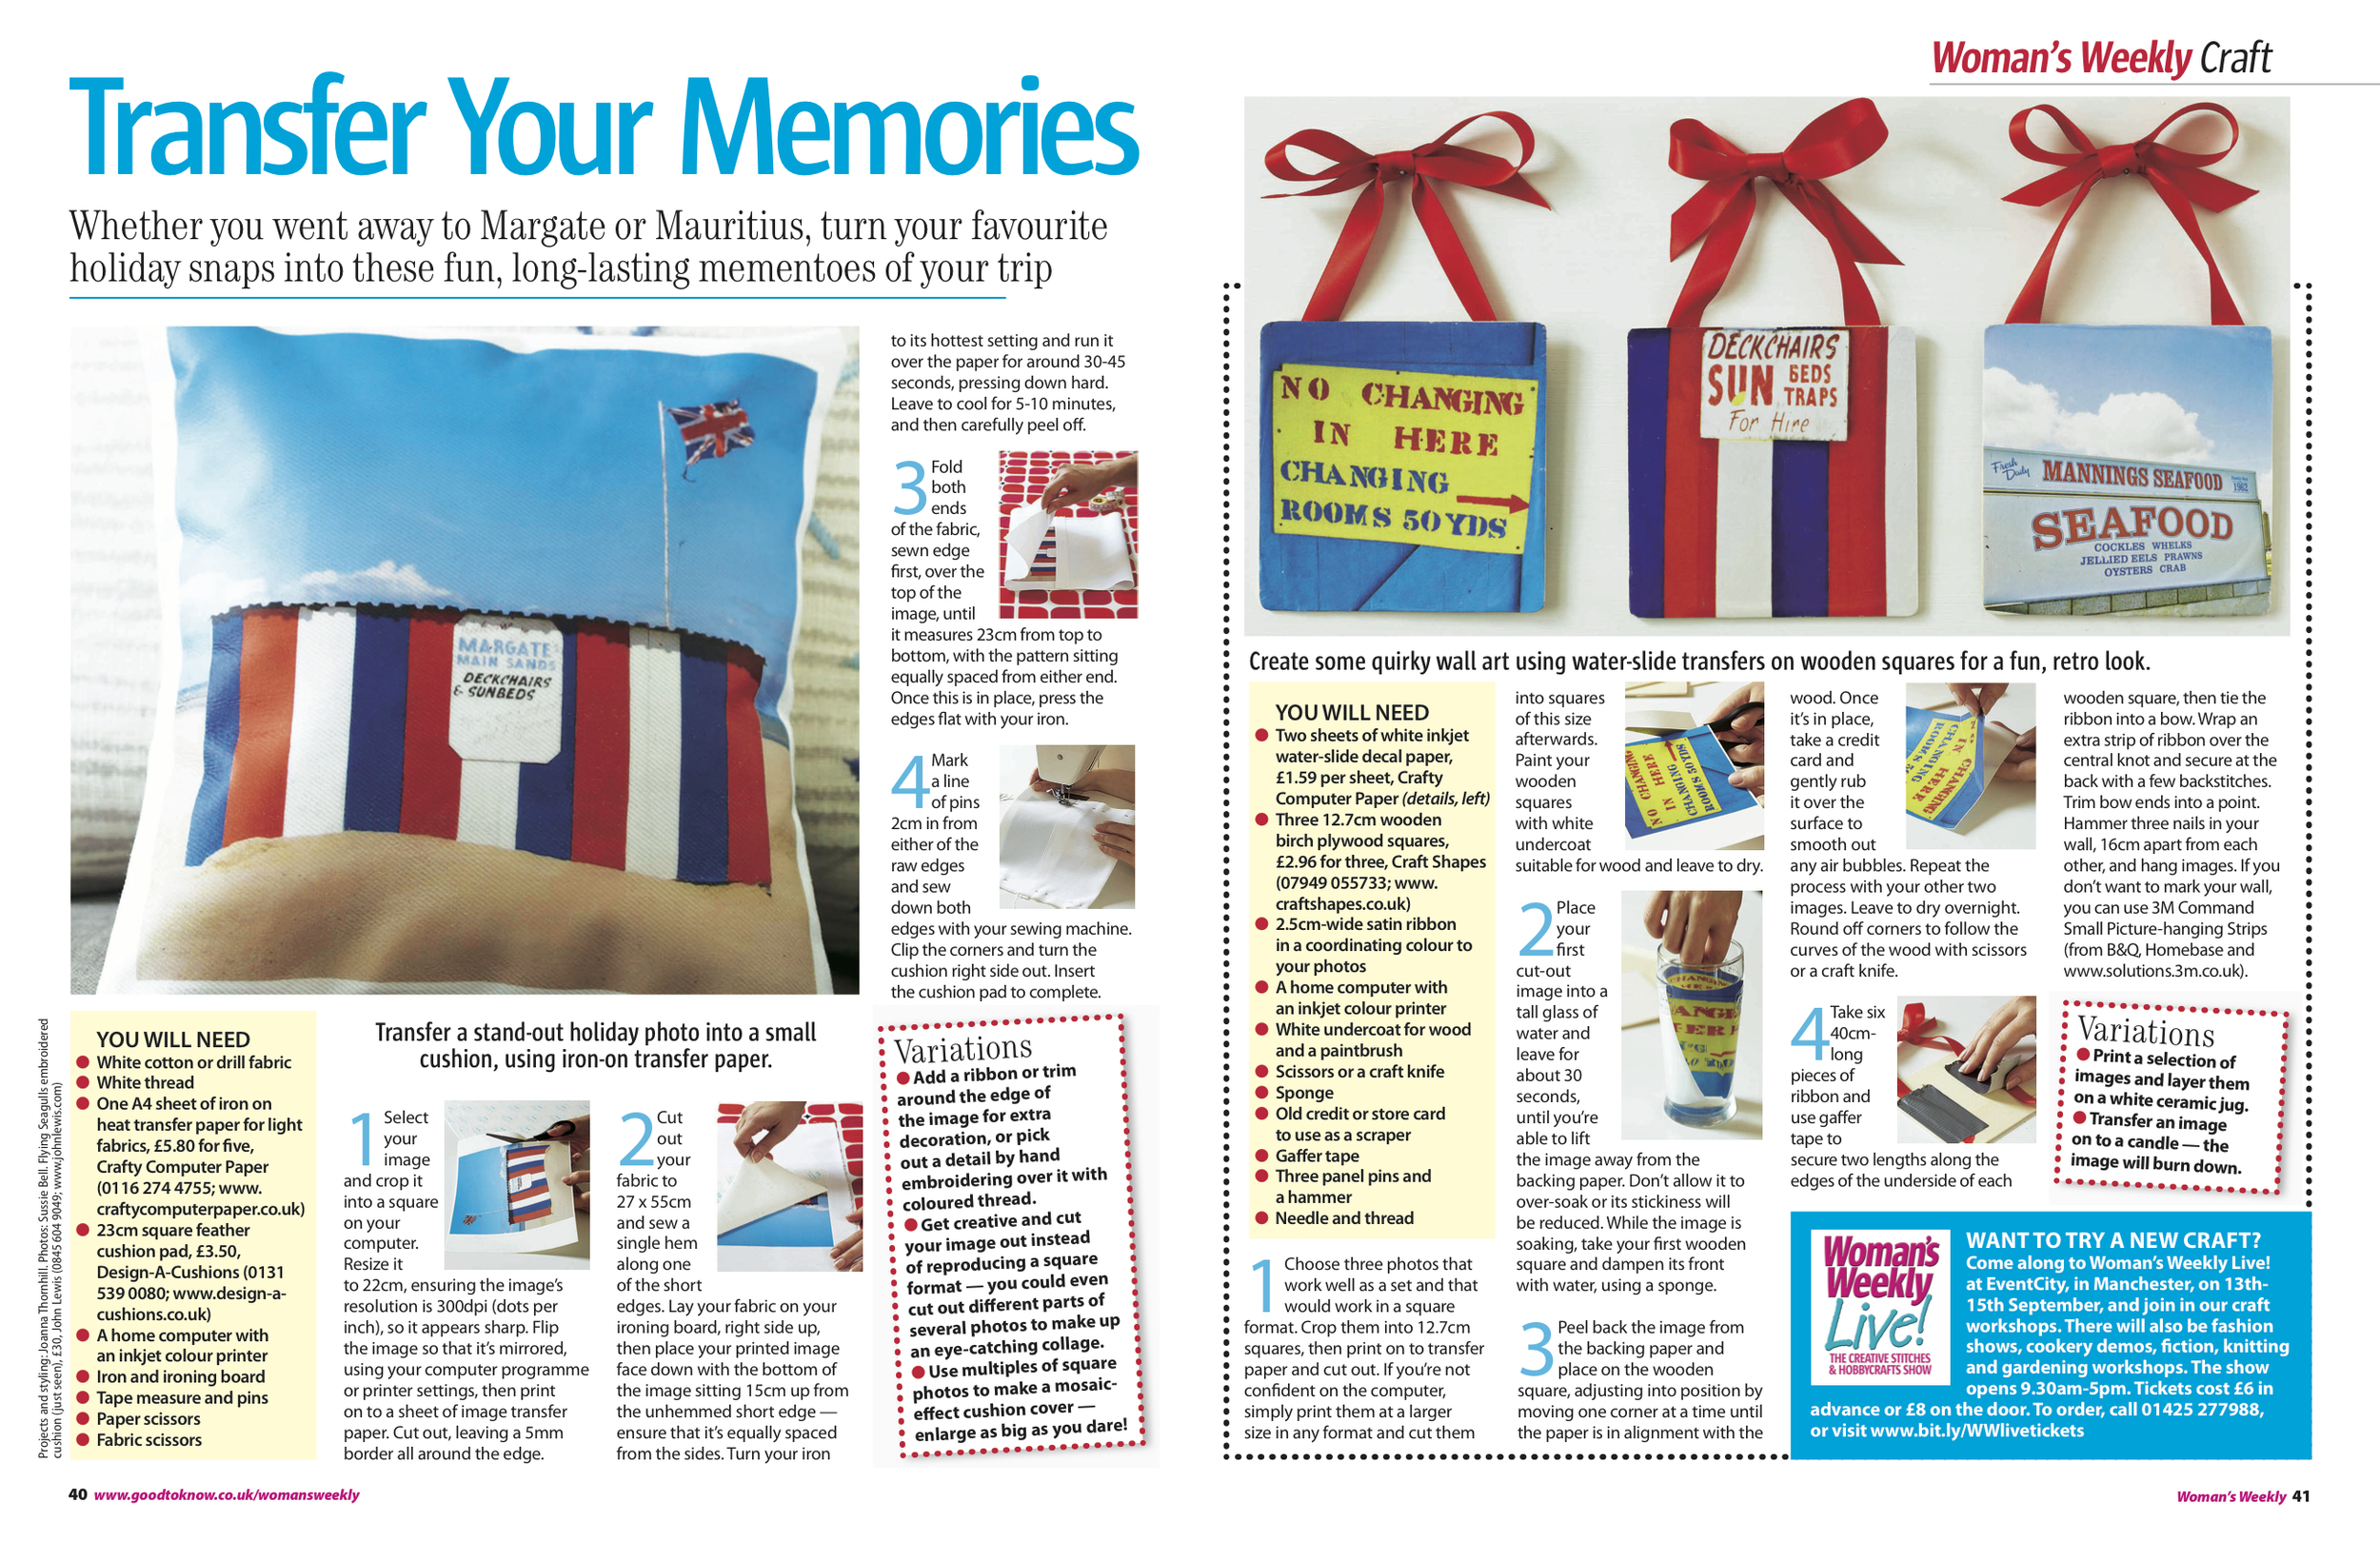 12. Woman's Weekly Take a Picture Craft Project by Interior Stylist Joanna Thornhill.jpg